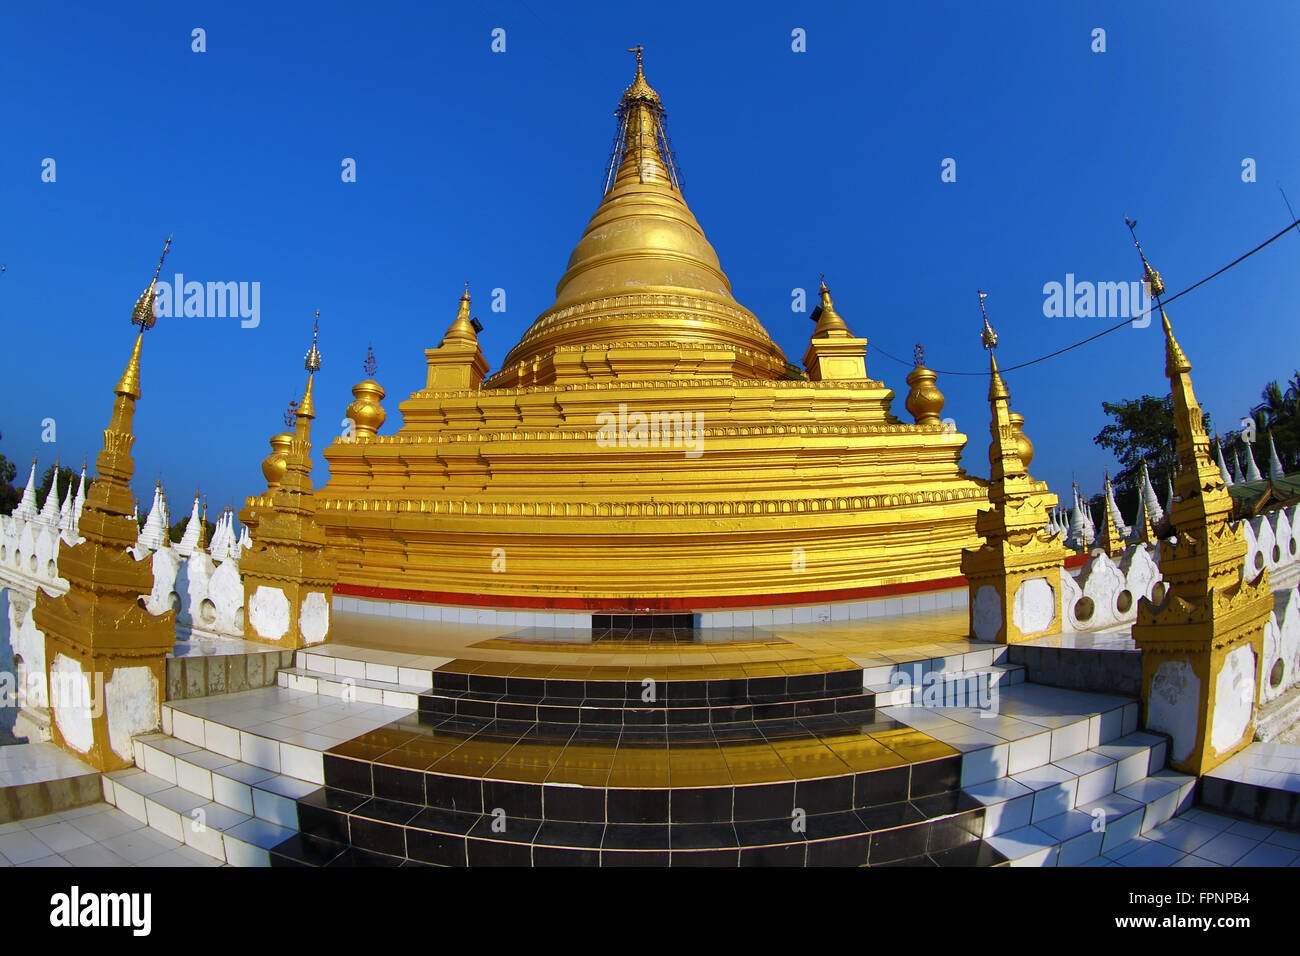 White dhamma ceti shrines at Sandamuni Pagoda, Mandalay, Myanmar (Burma) - Stock Image